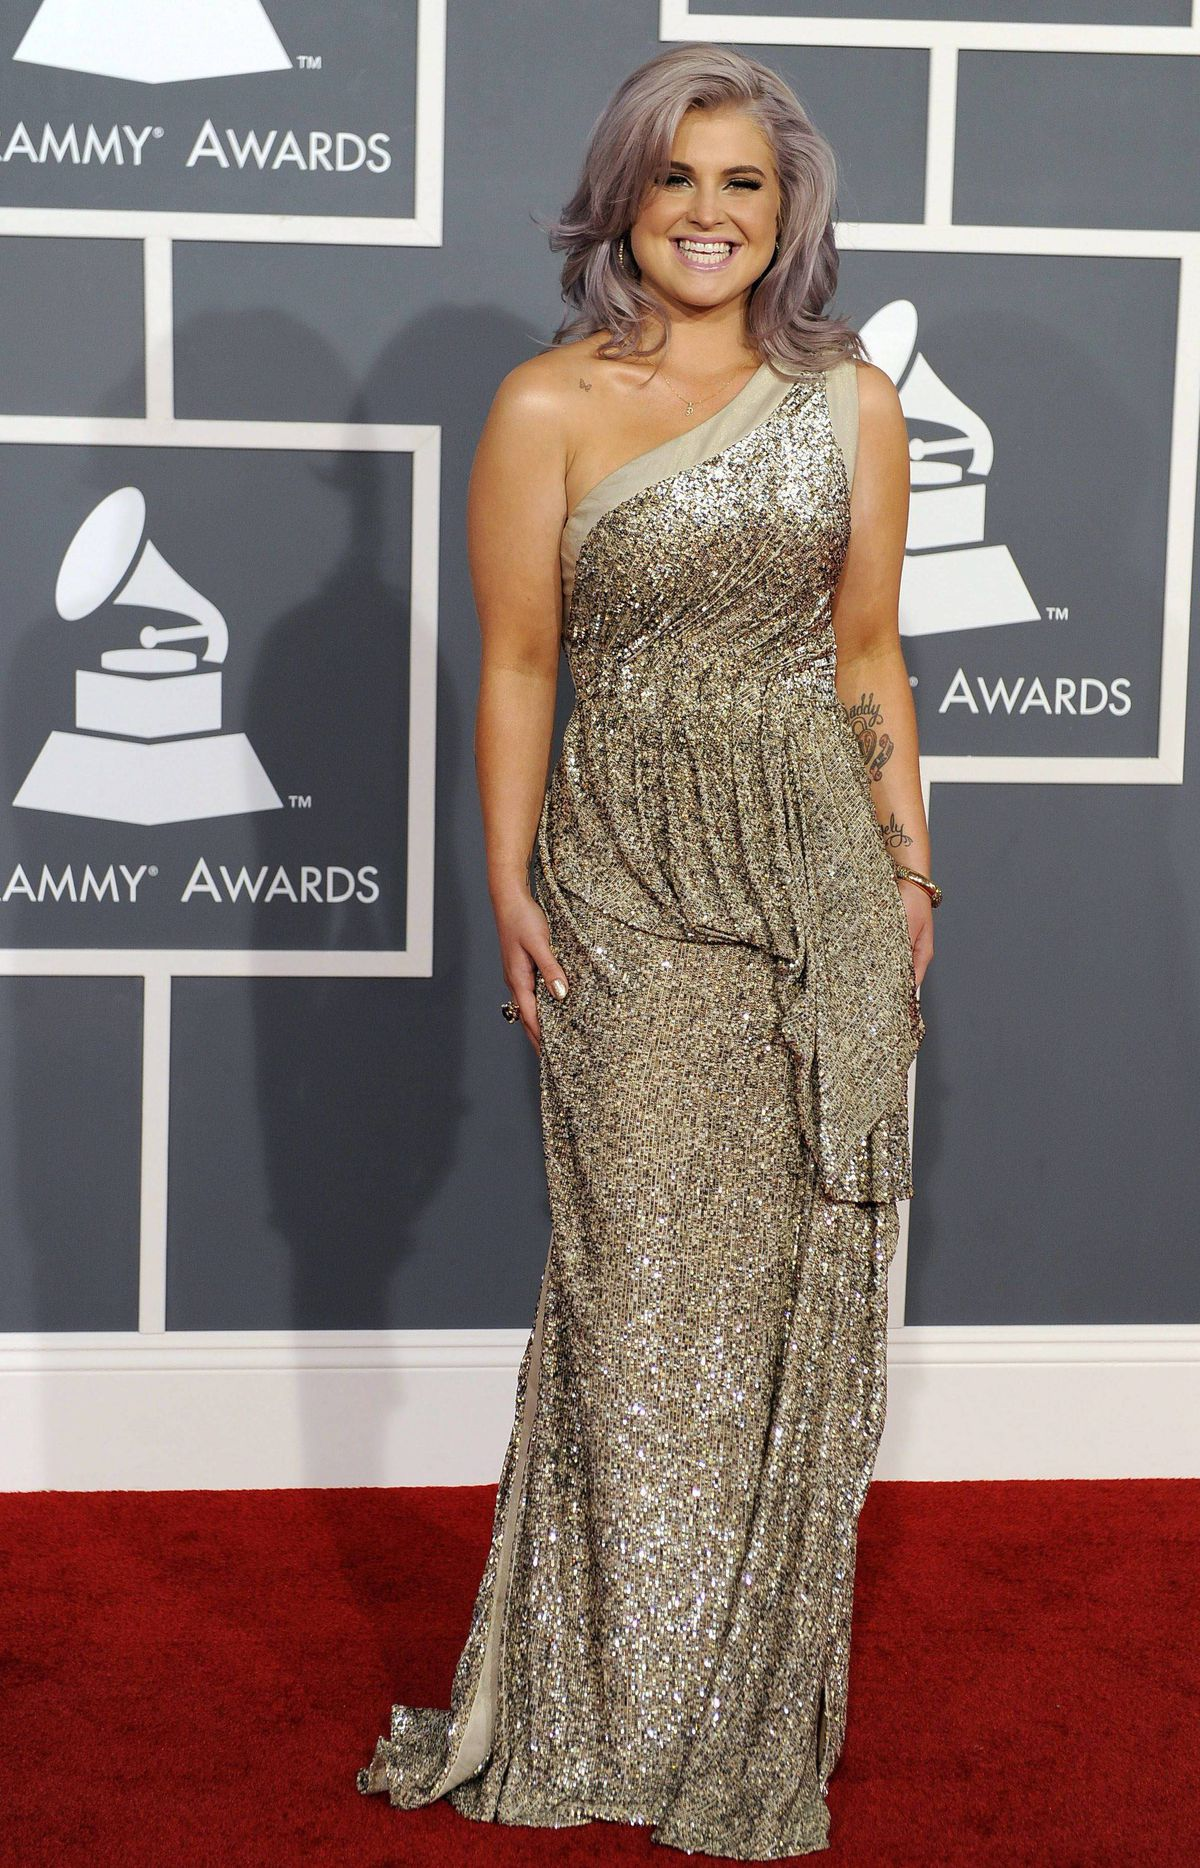 Kelly Osbourne arrives at the 54th annual GRAMMY Awards on Sunday, Feb. 12, 2012 in Los Angeles.